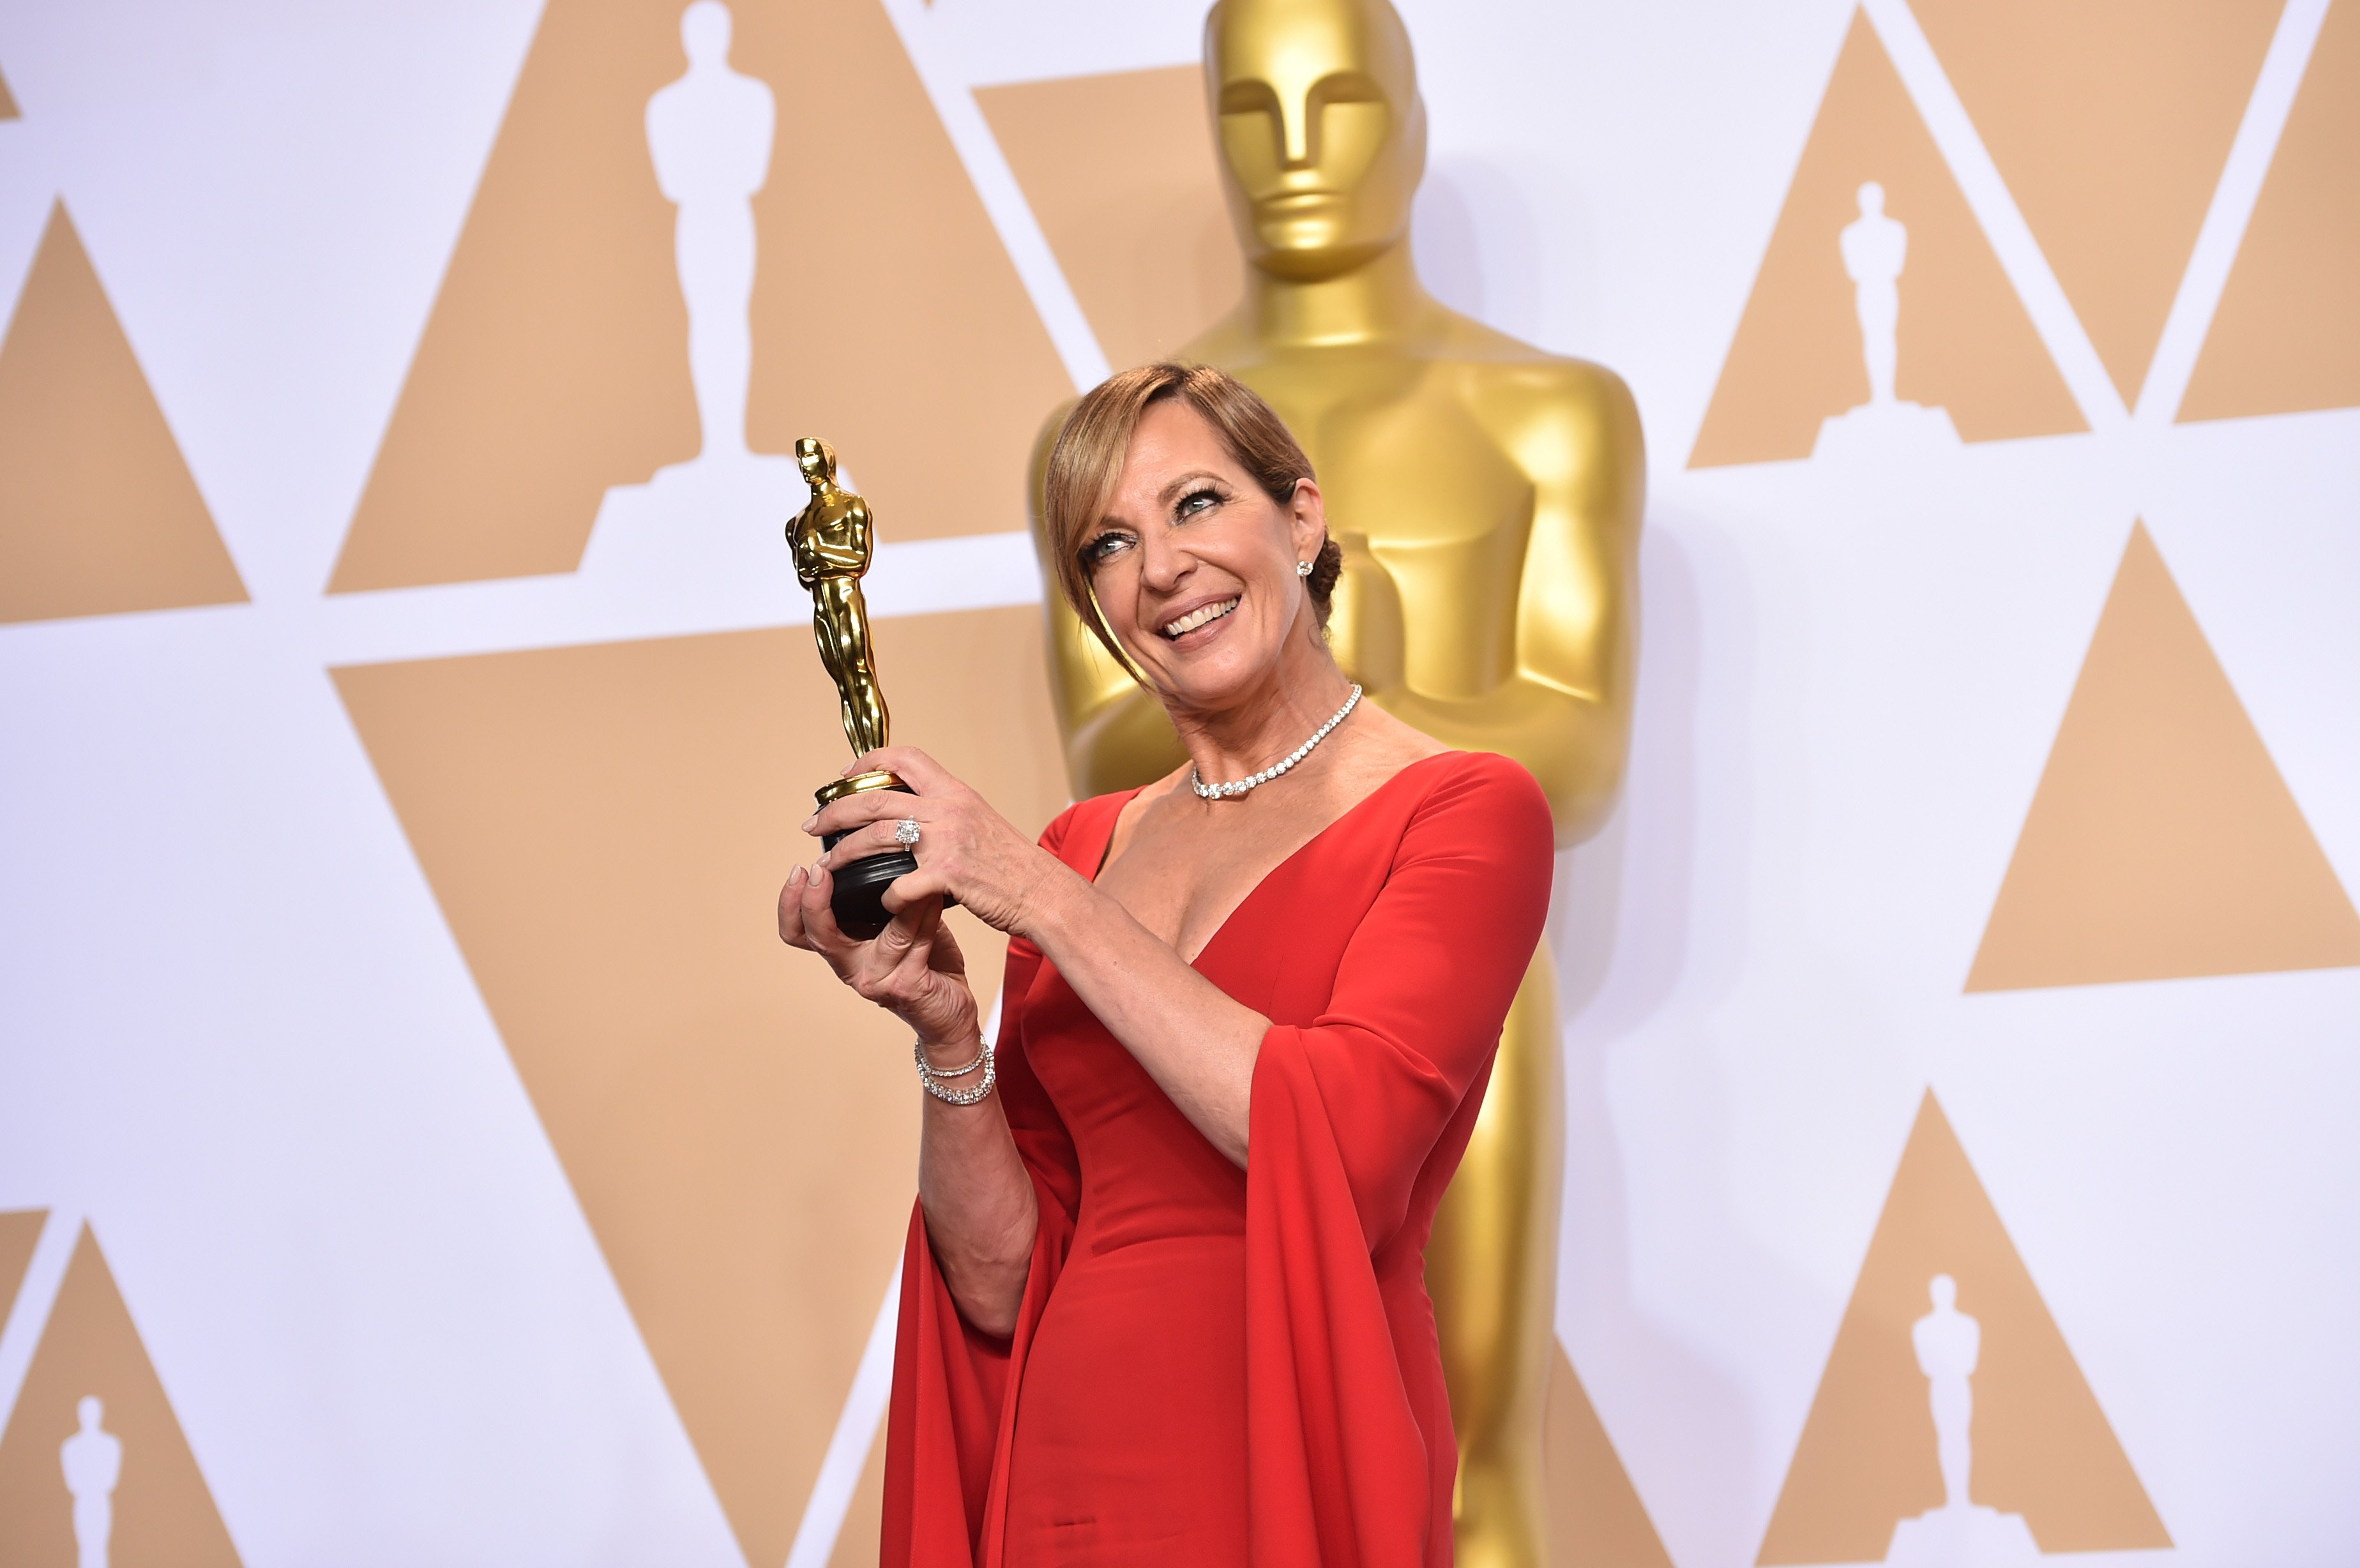 Allison Janney pictured holding an Oscar award at the 90th Annual Academy Awards, 2018, California. | Photo: Getty Images